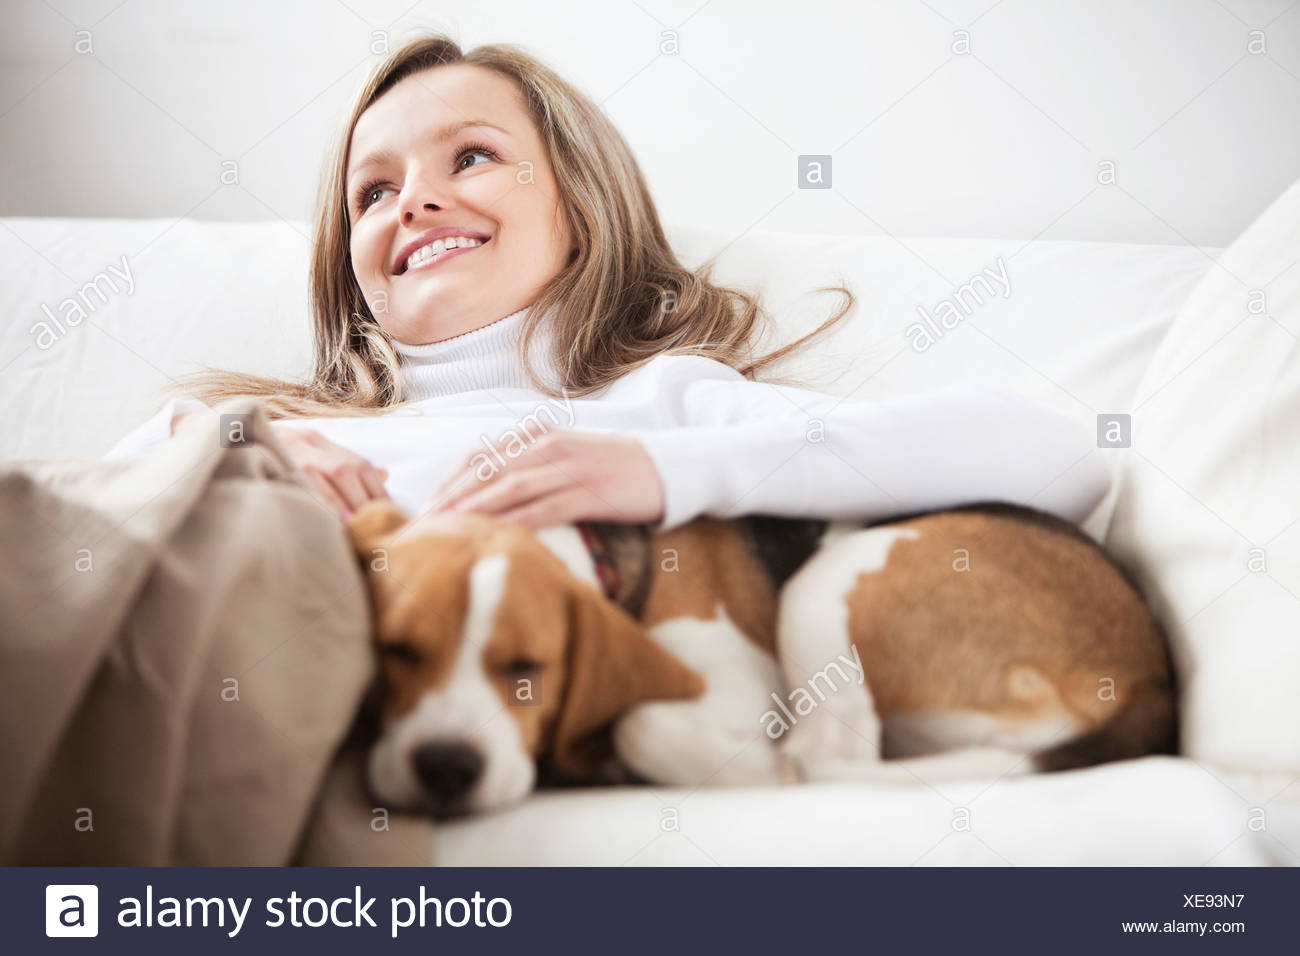 portrait of young woman together on sofa with dog - Stock Image